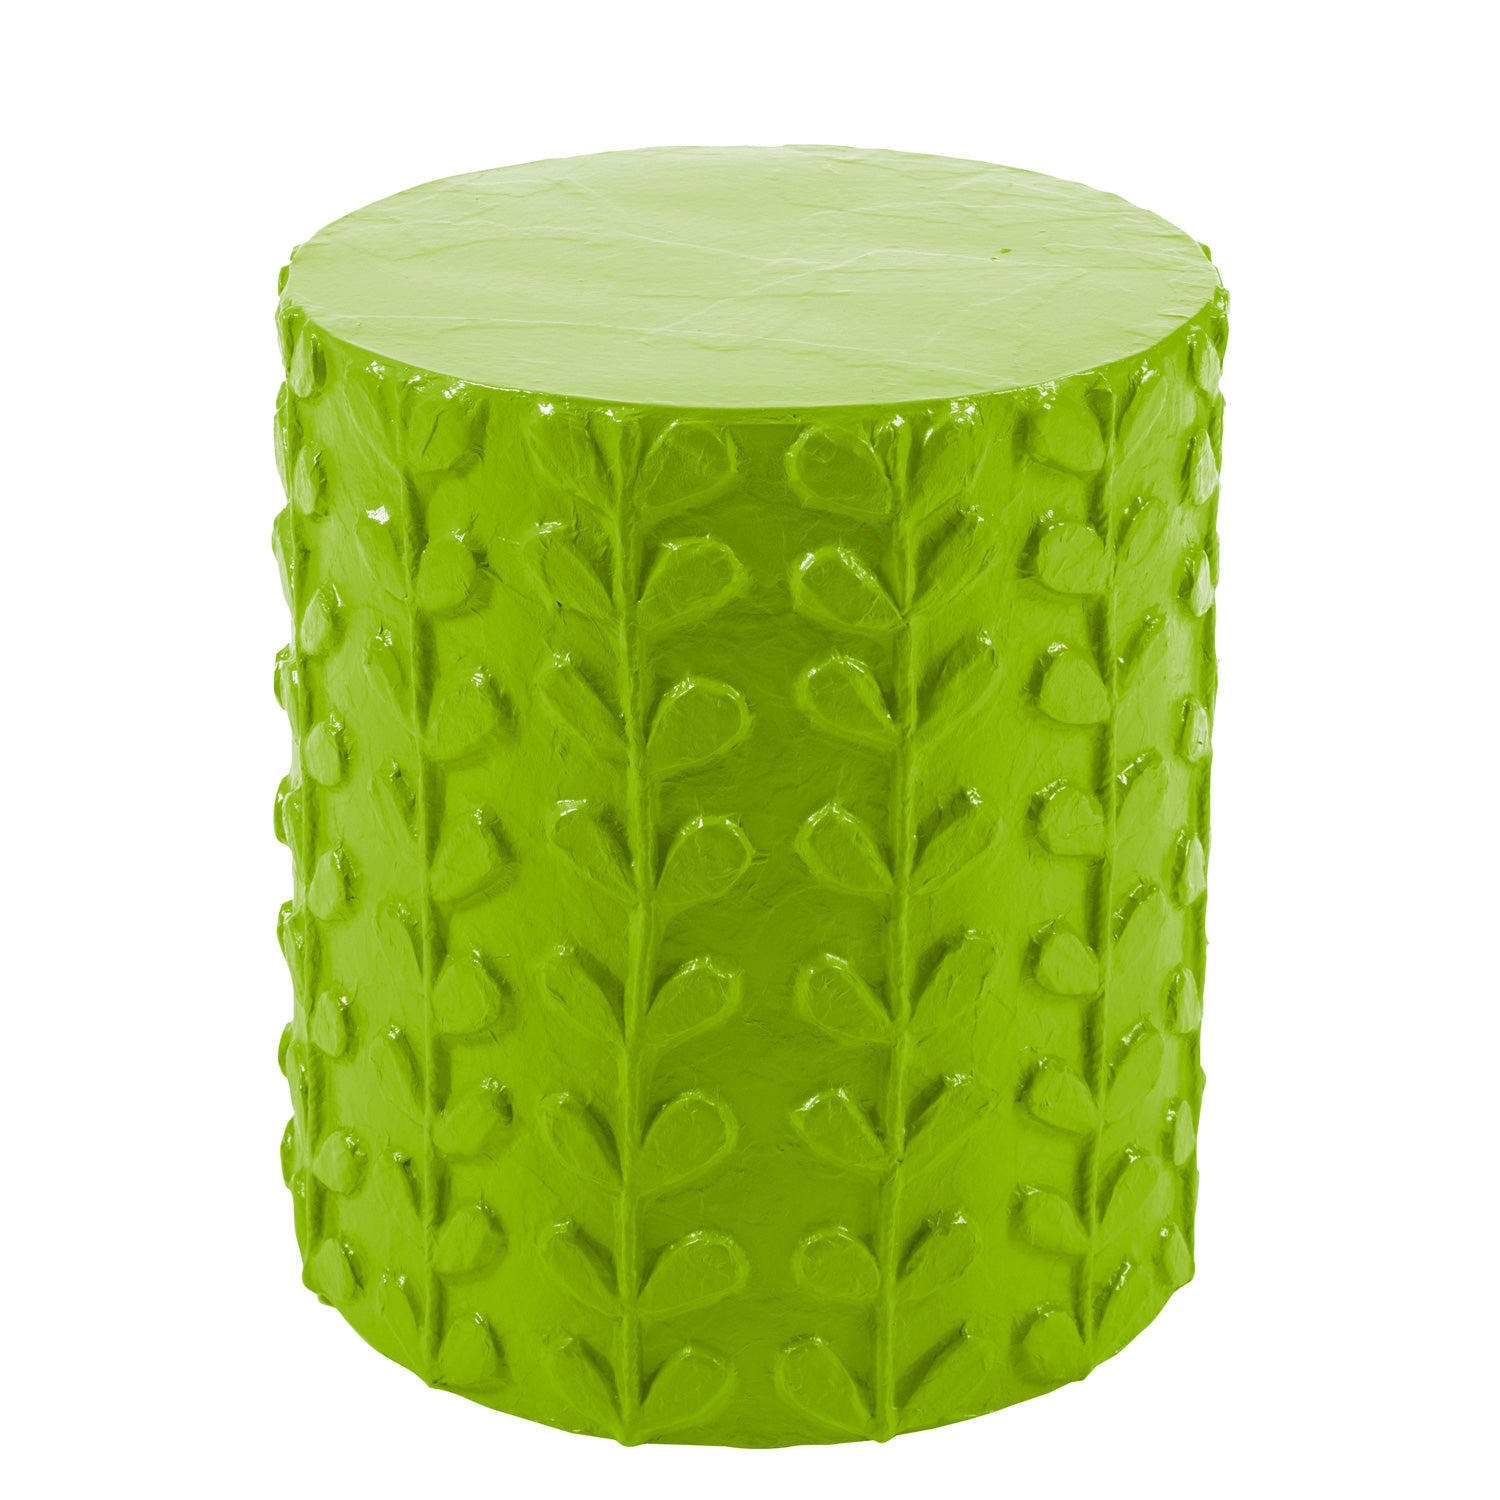 green happy stool or accent table